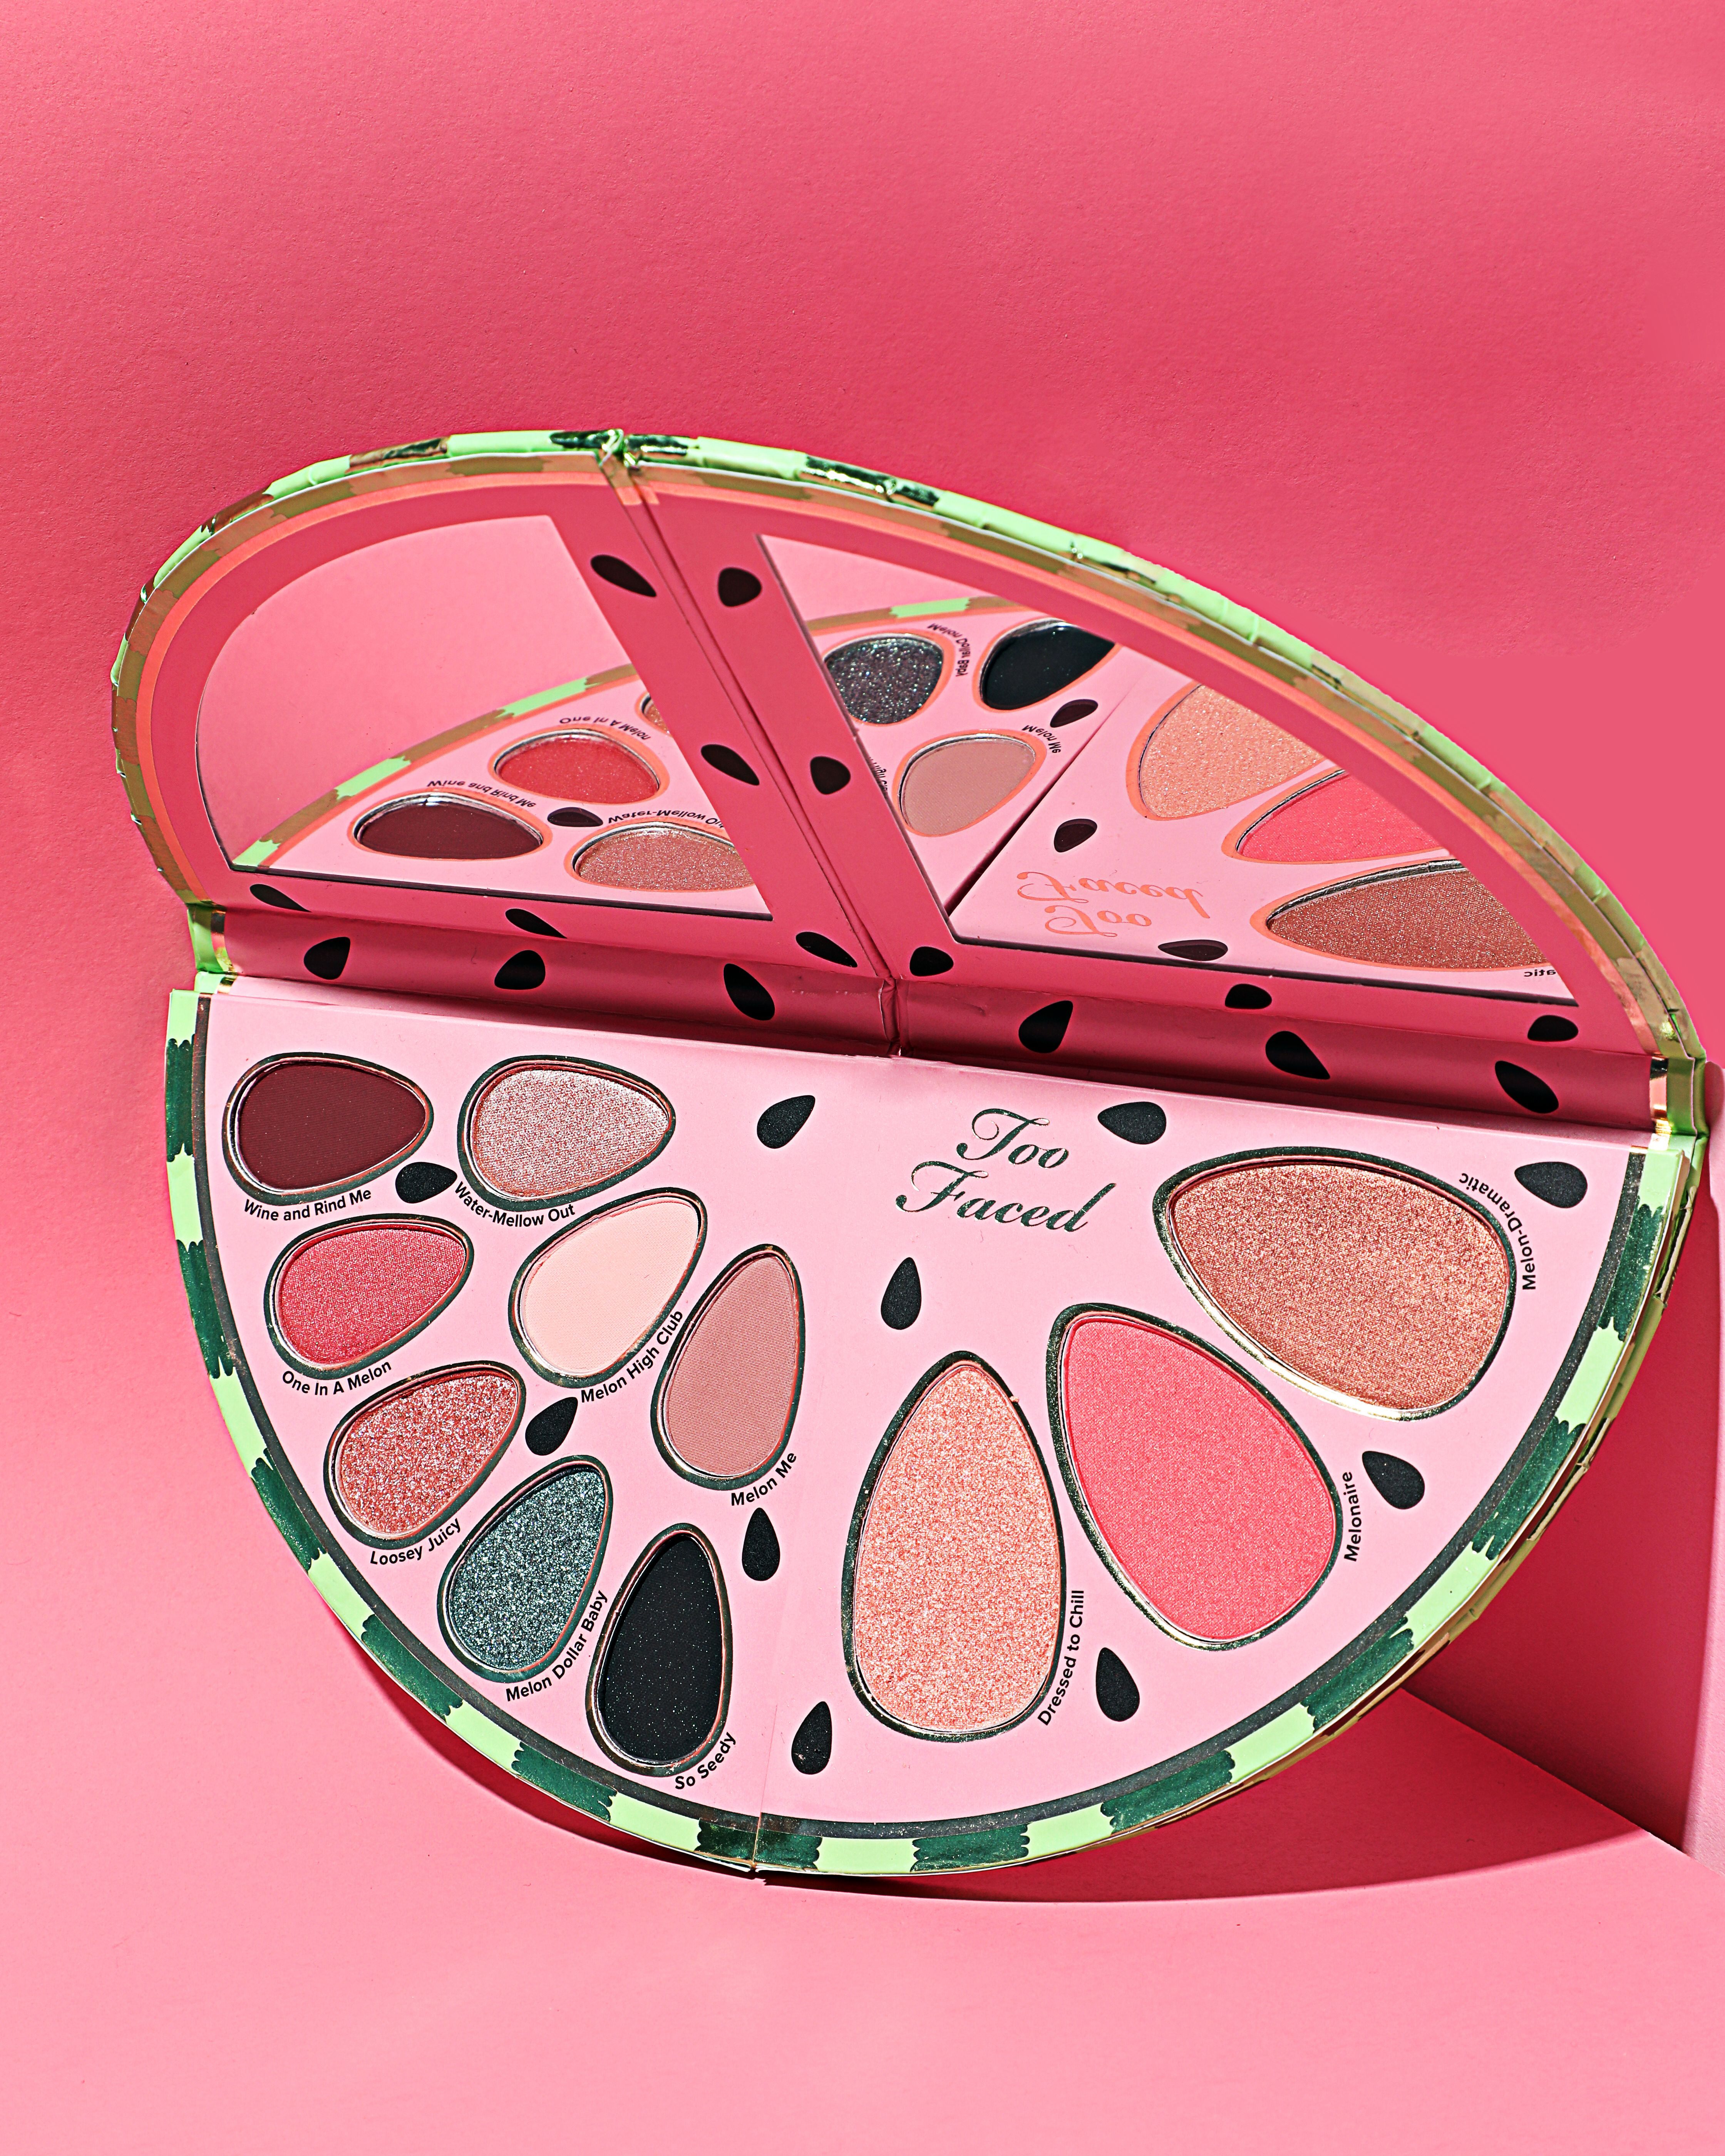 Watermelon Slice Face and Eye Palette (With images) Eye